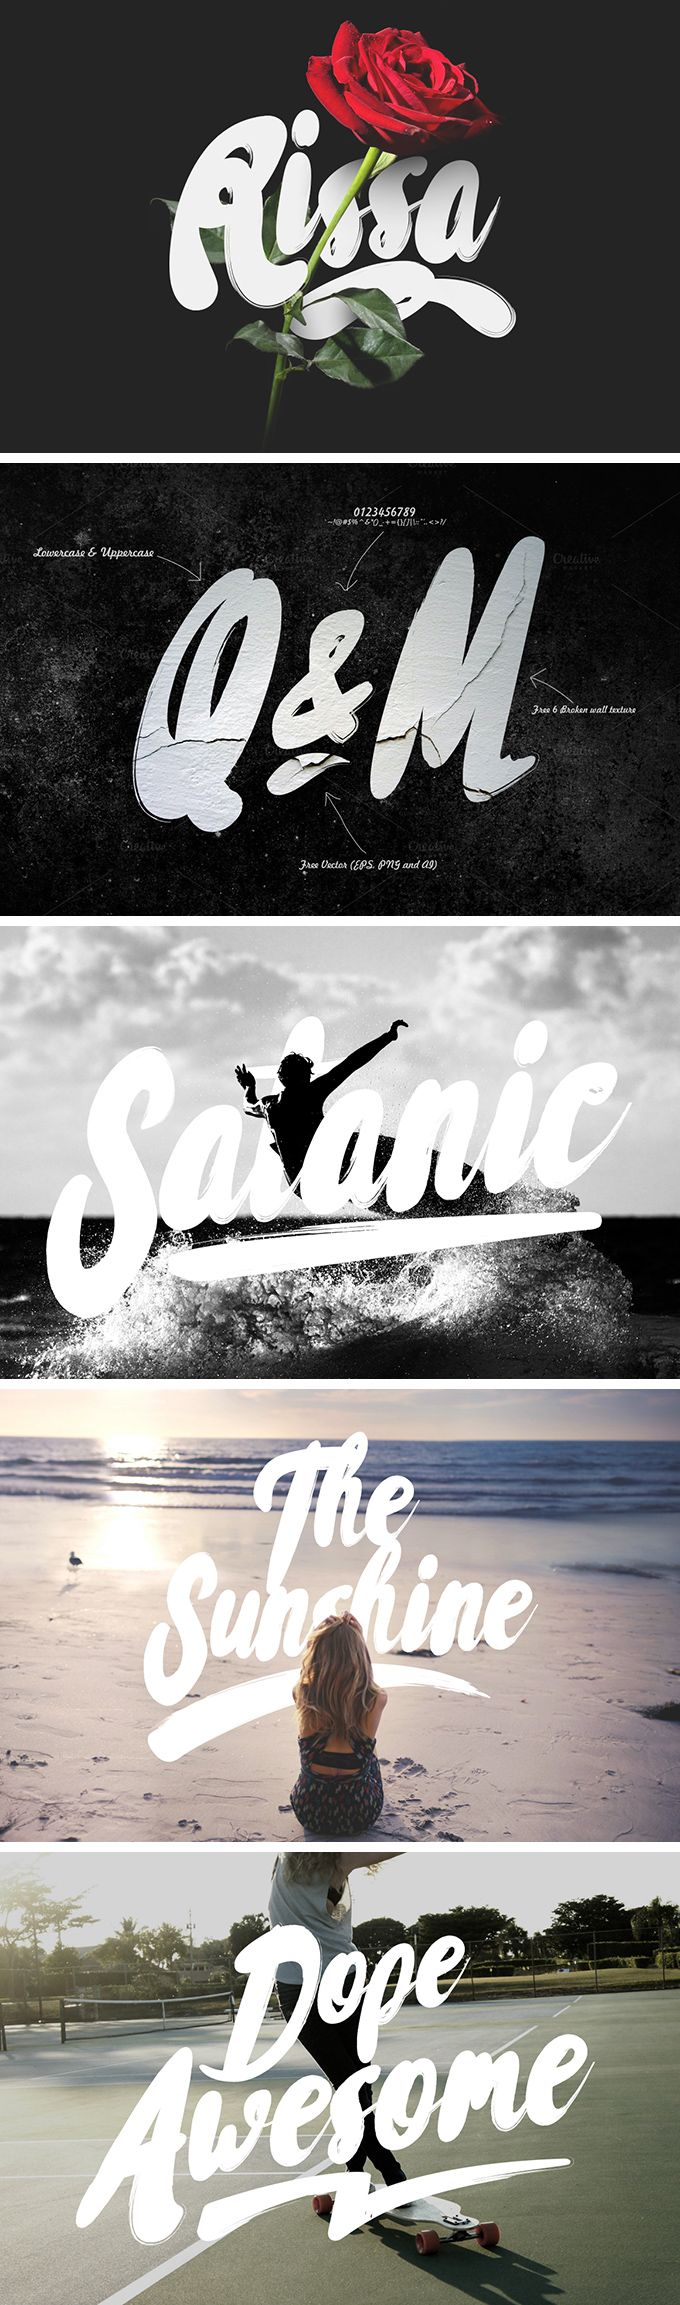 Rissa Typeface | designed and released by Maulana Creative